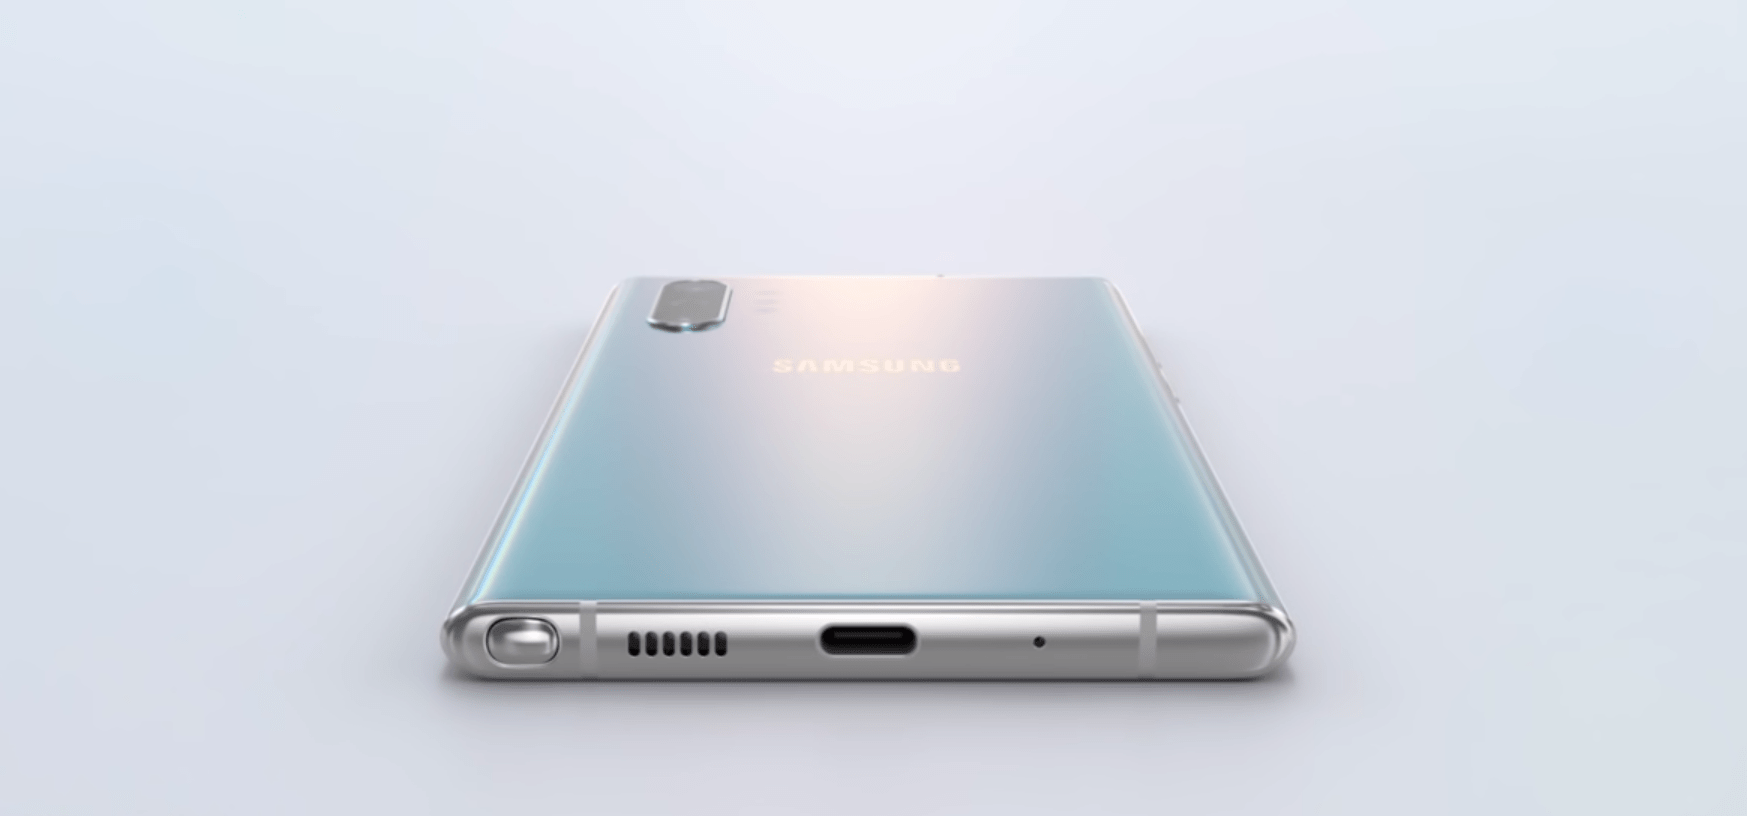 Samsung Galaxy Note 20 Release Date Price And Specs Valuewalk